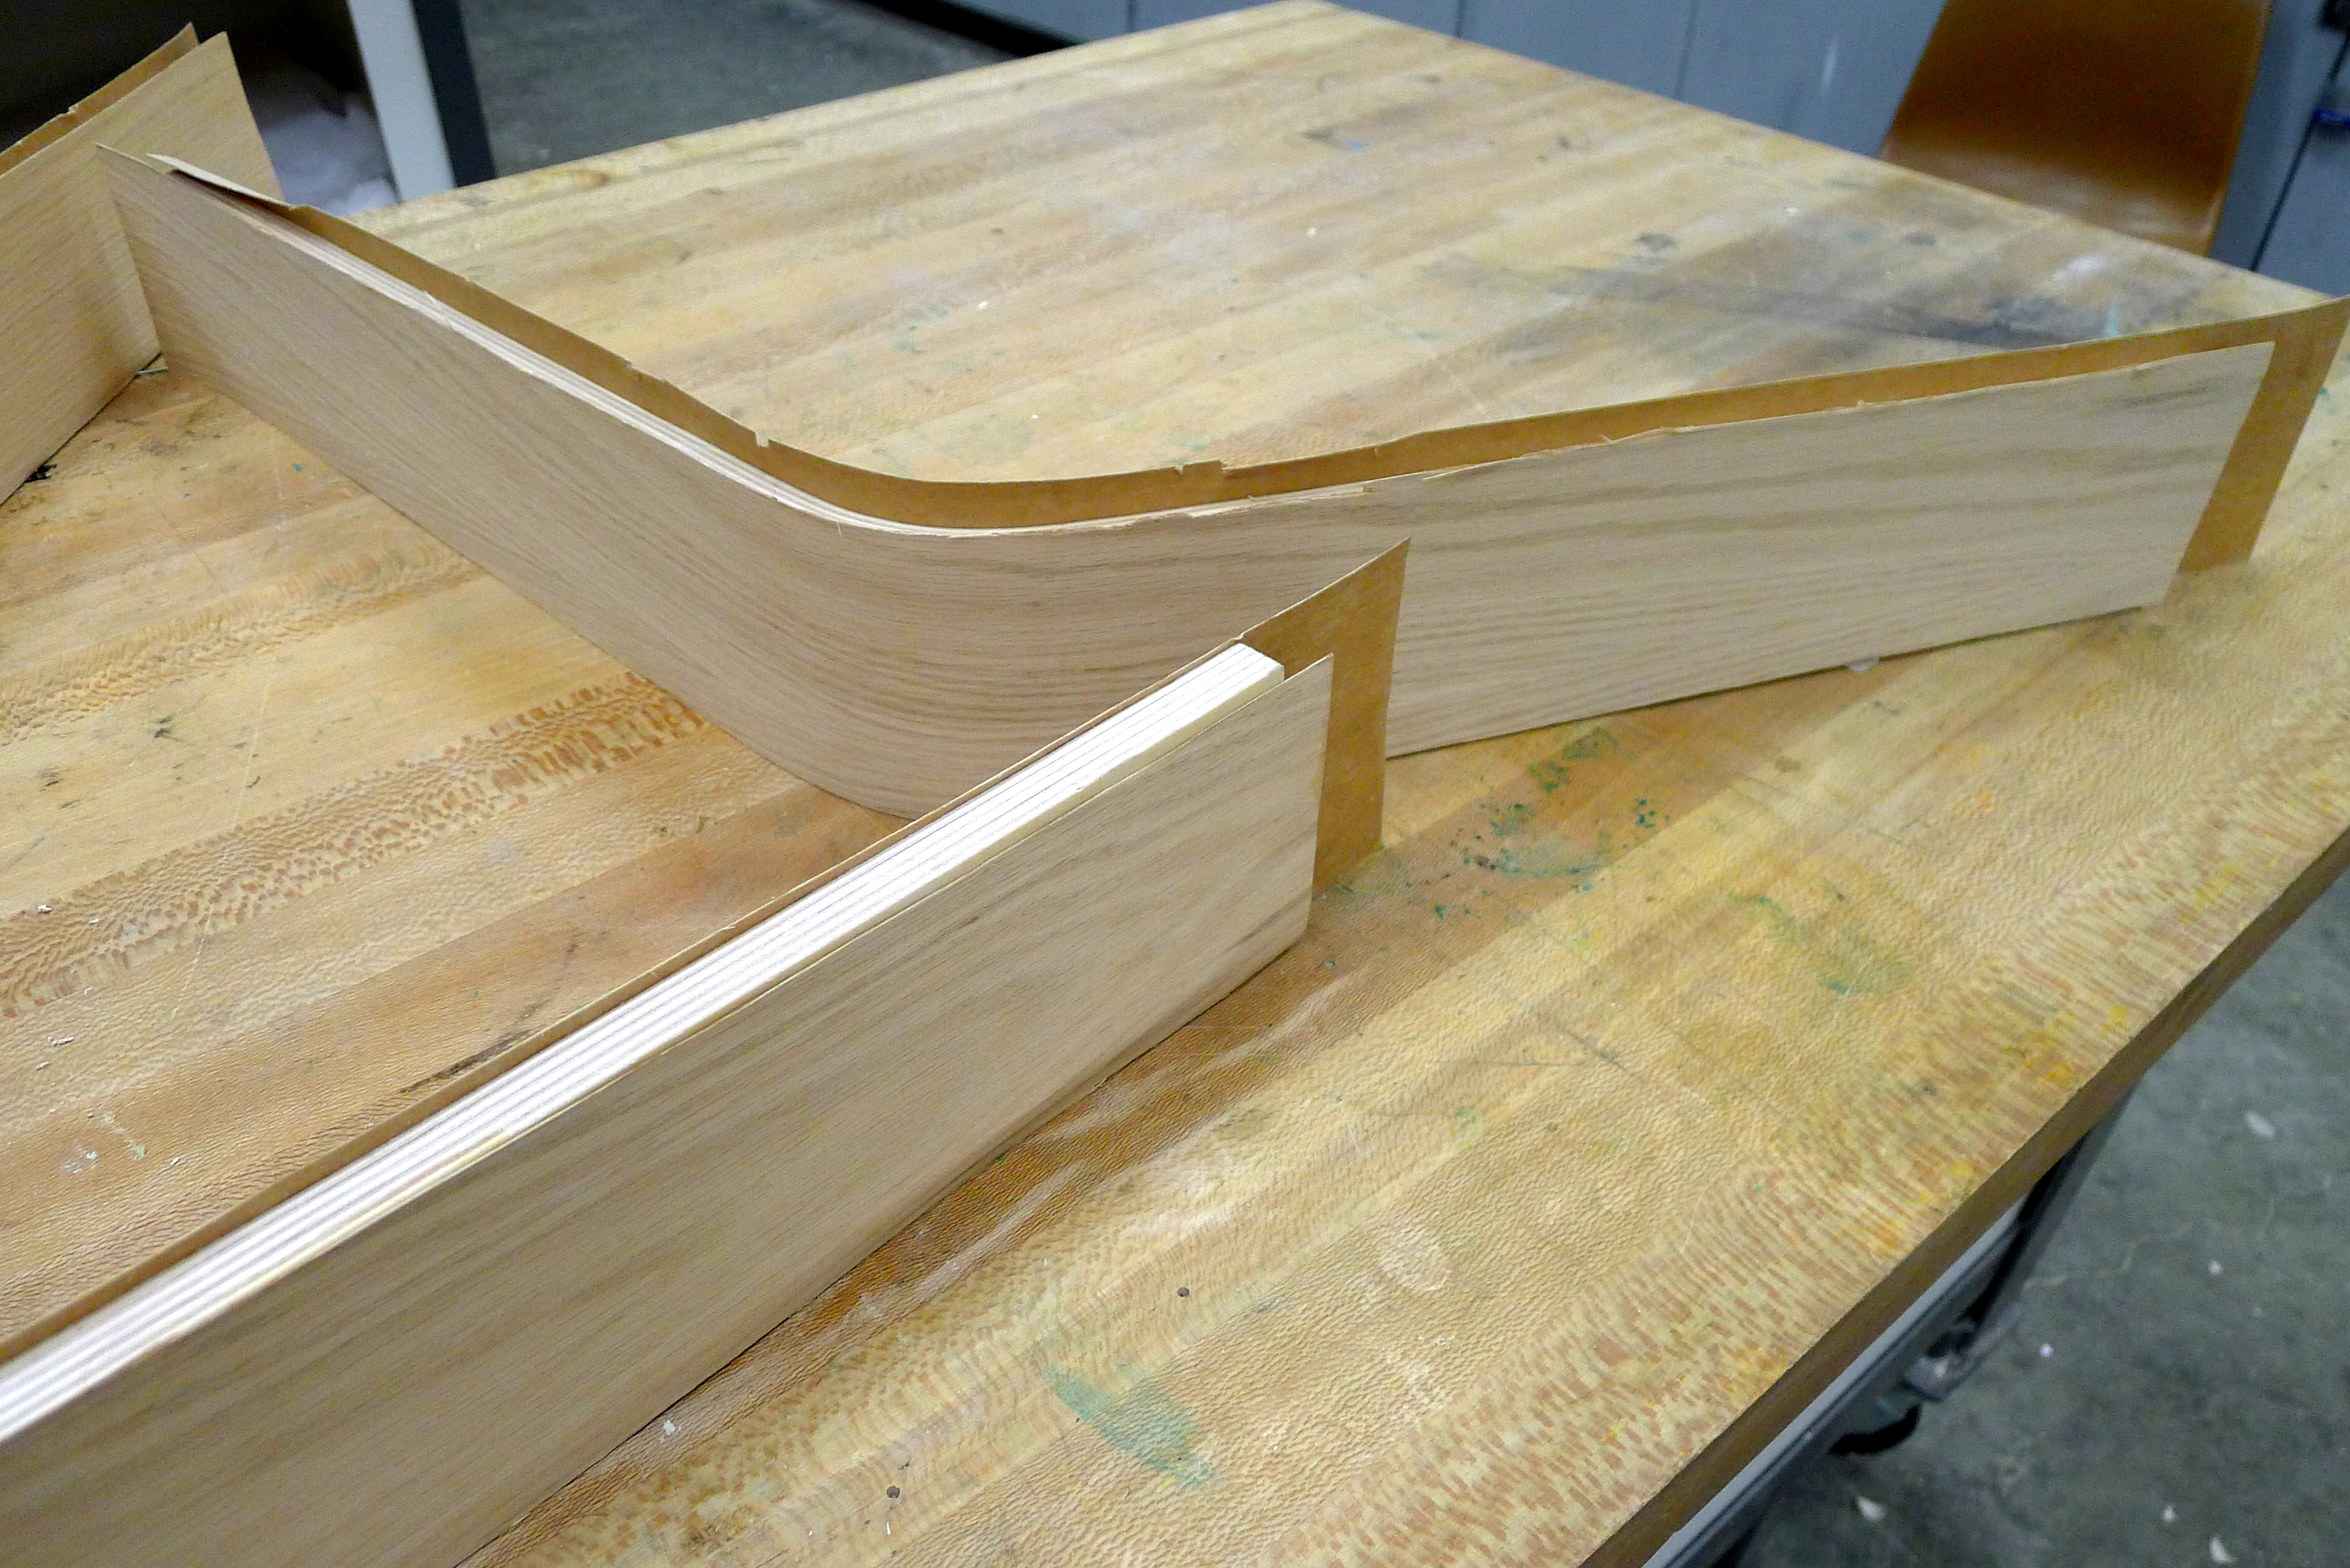 Picture of Cutting the Pieces and Veneering: